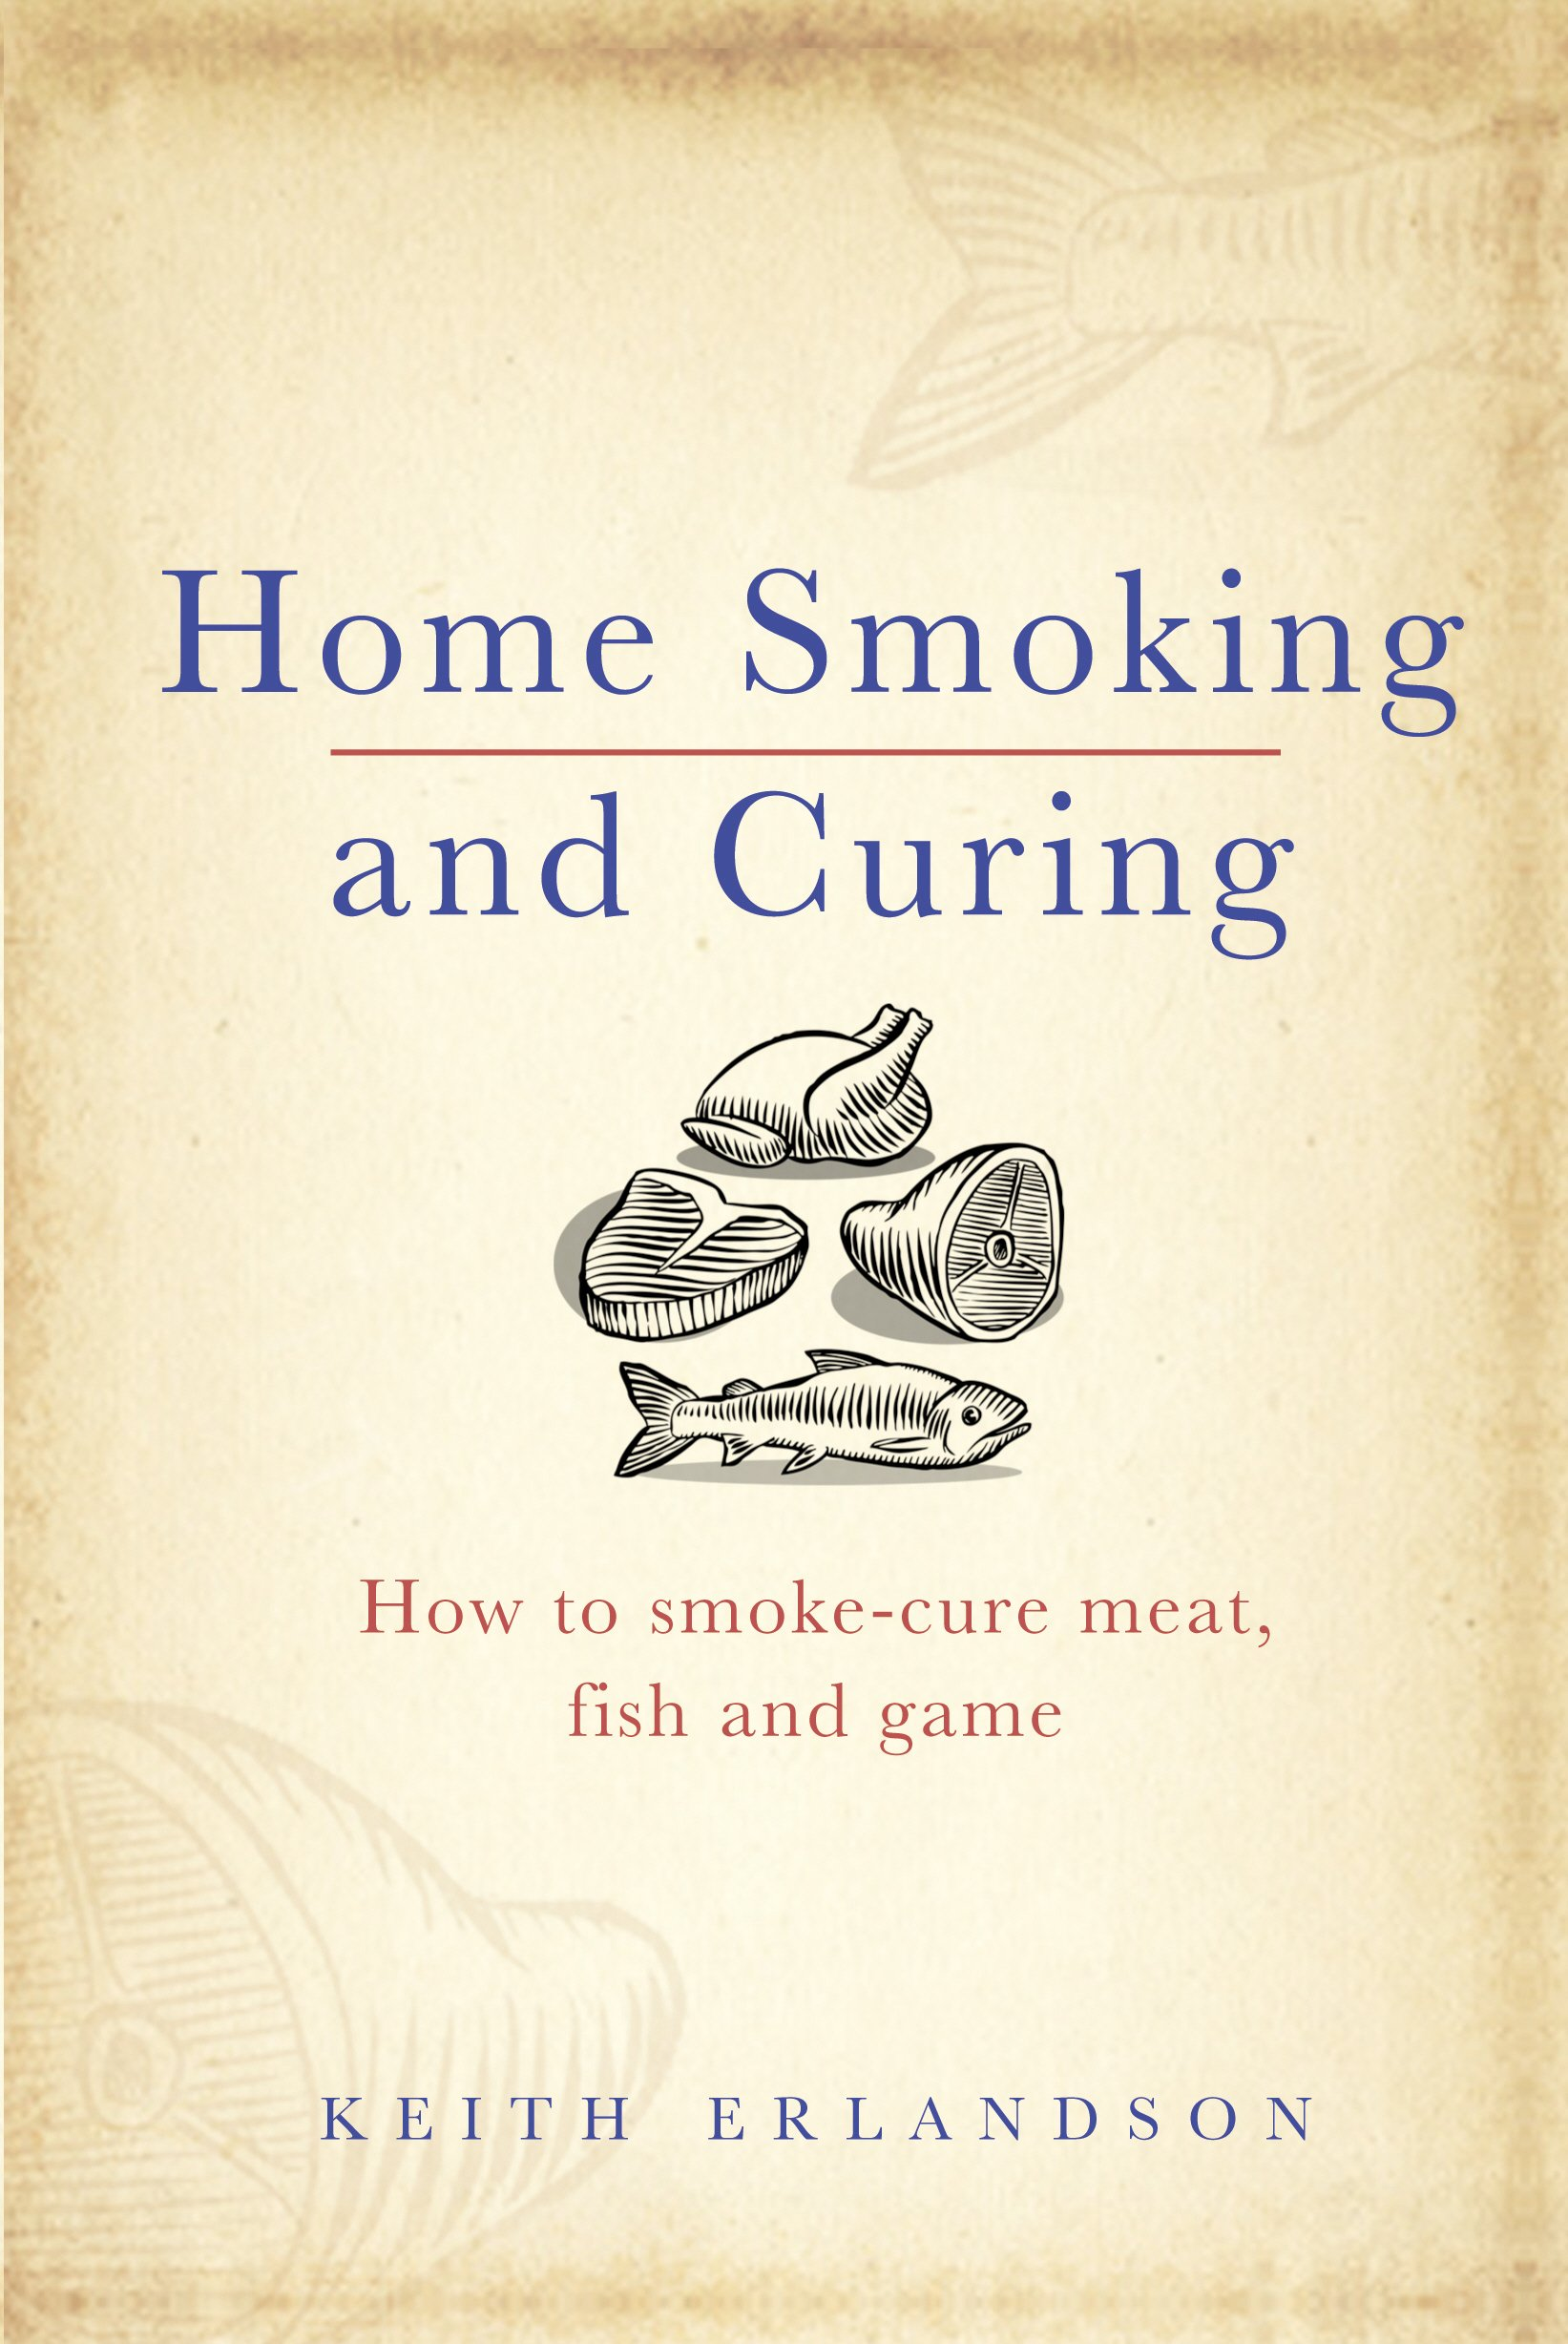 Image OfHome Smoking And Curing: How To Smoke-Cure Meat, Fish And Game